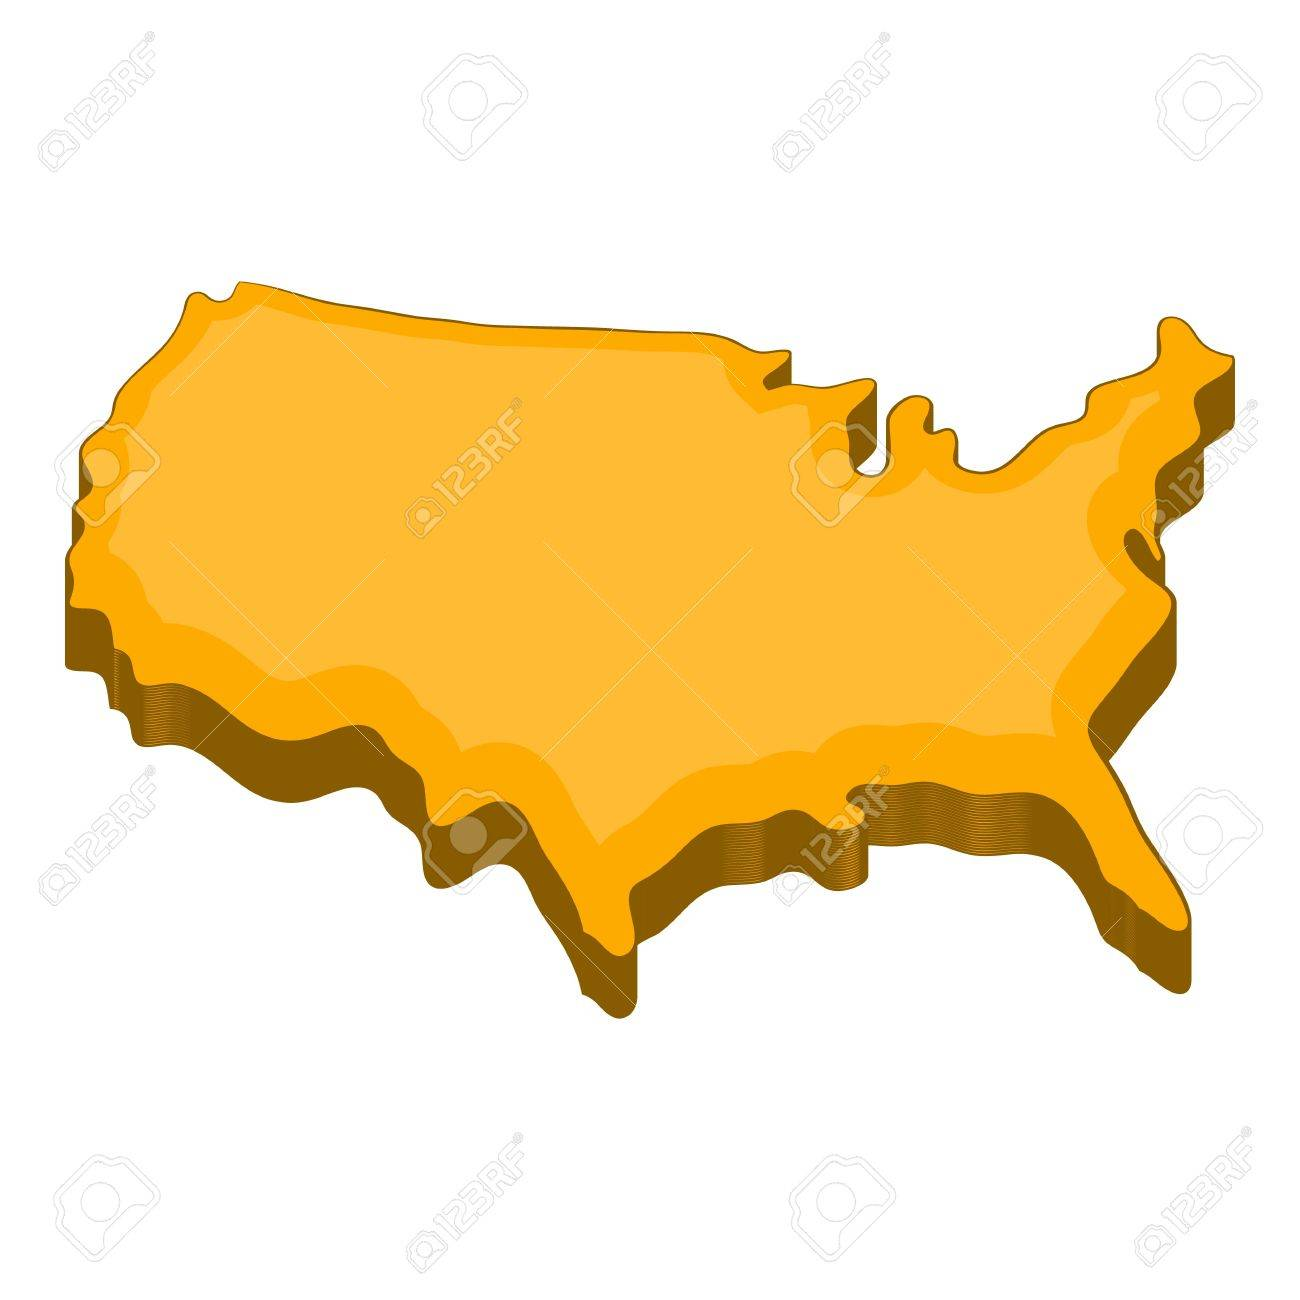 American Map Vector.American Map Icon Cartoon Illustration Of American Map Vector